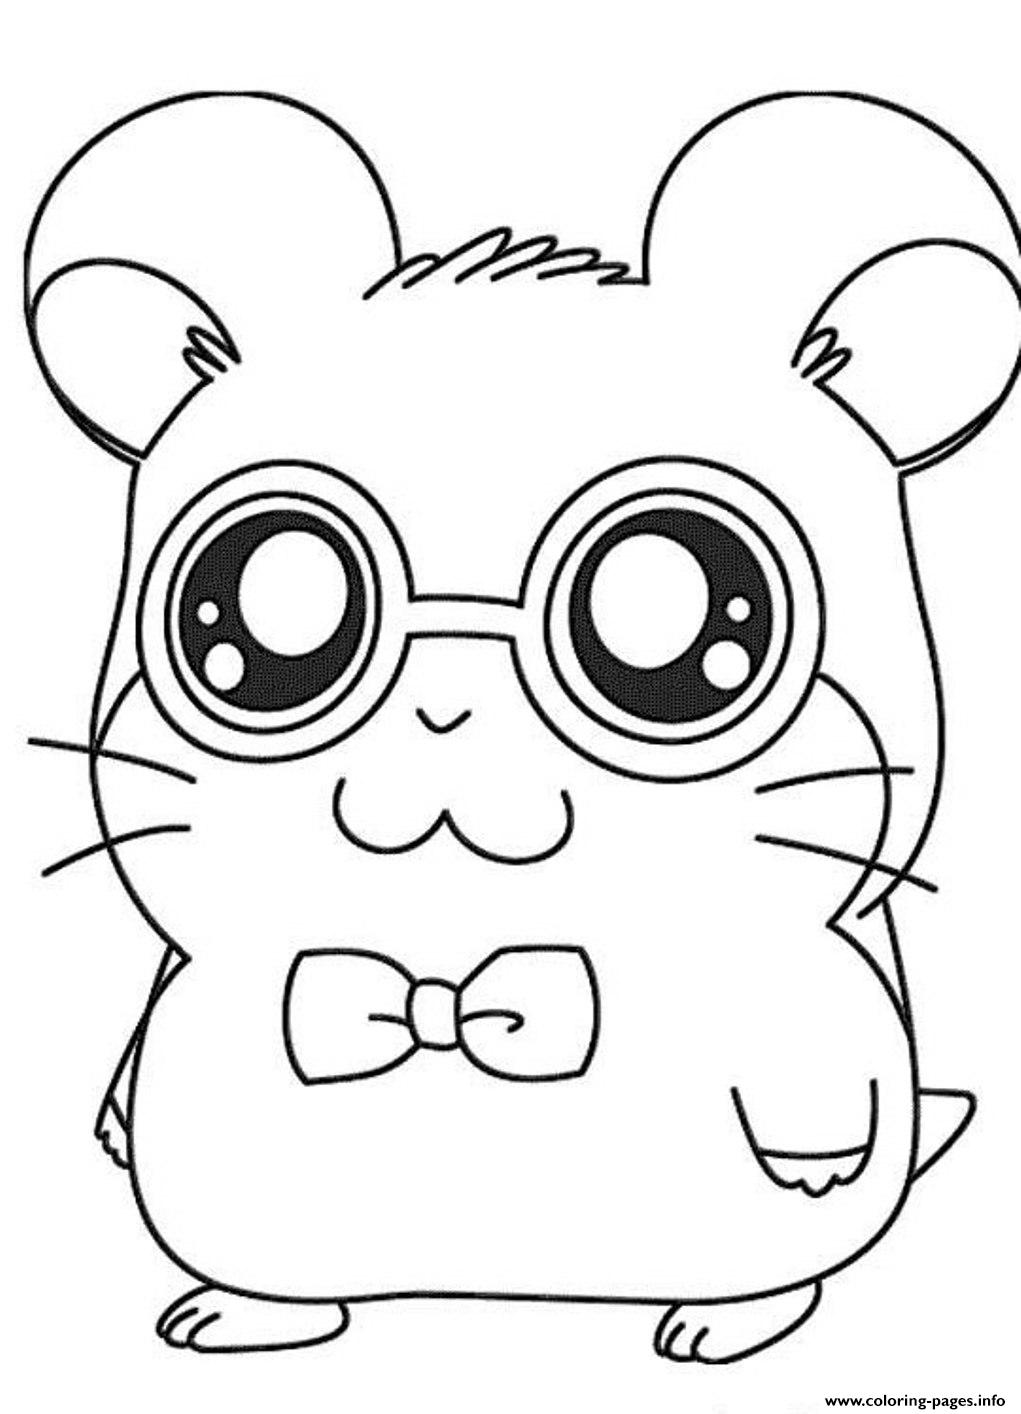 Cute Dexter Hamtaro S3b70 coloring pages